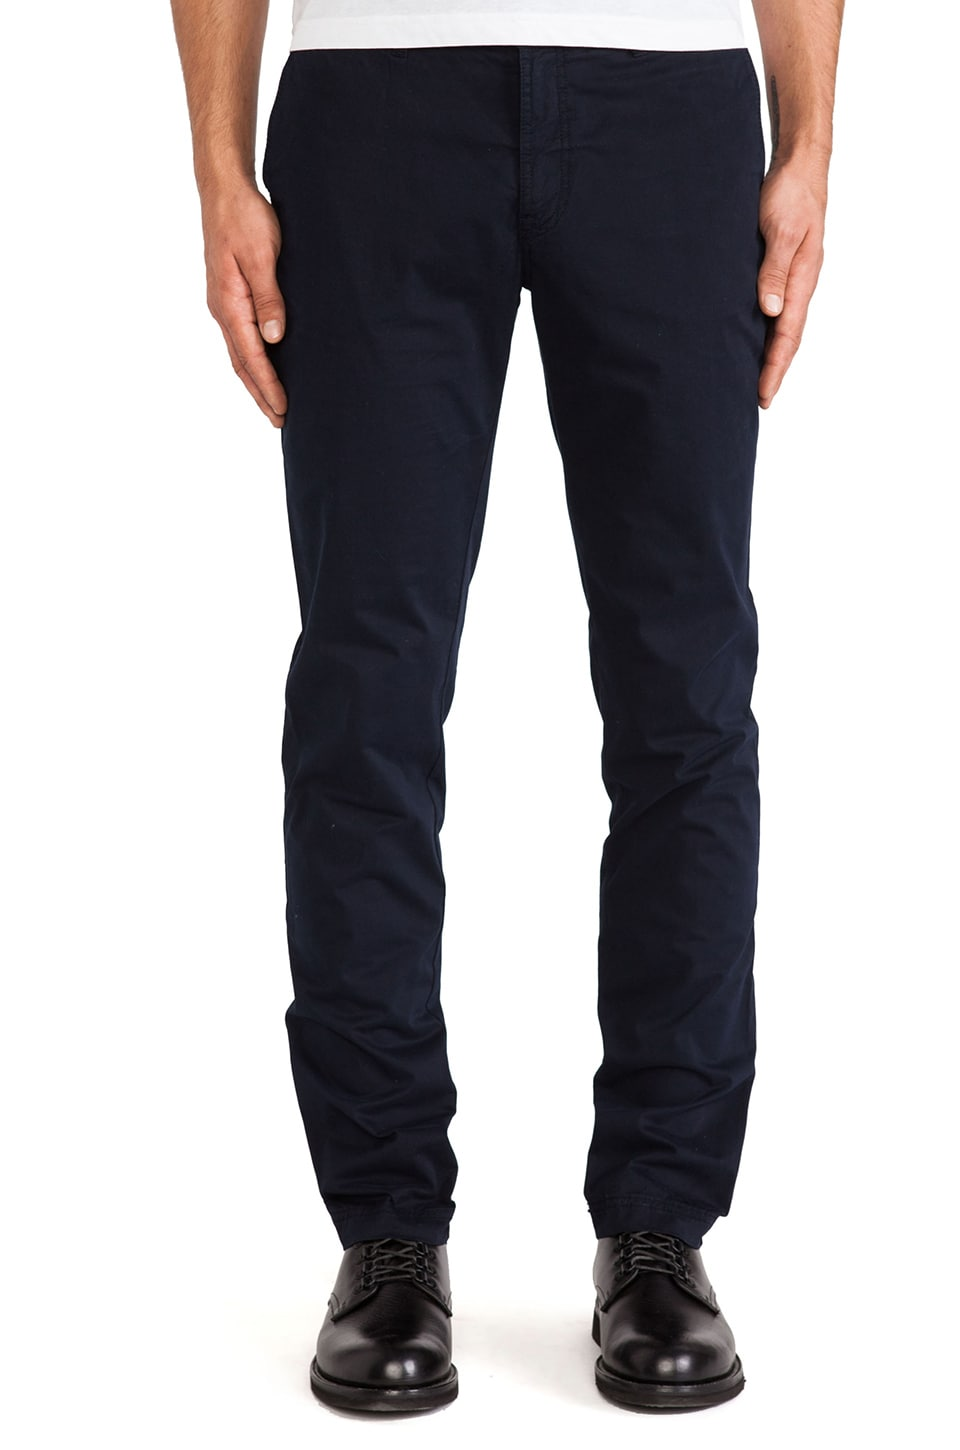 J. Lindeberg Chaze 46 Deco Super Satin Pant in Dark Navy